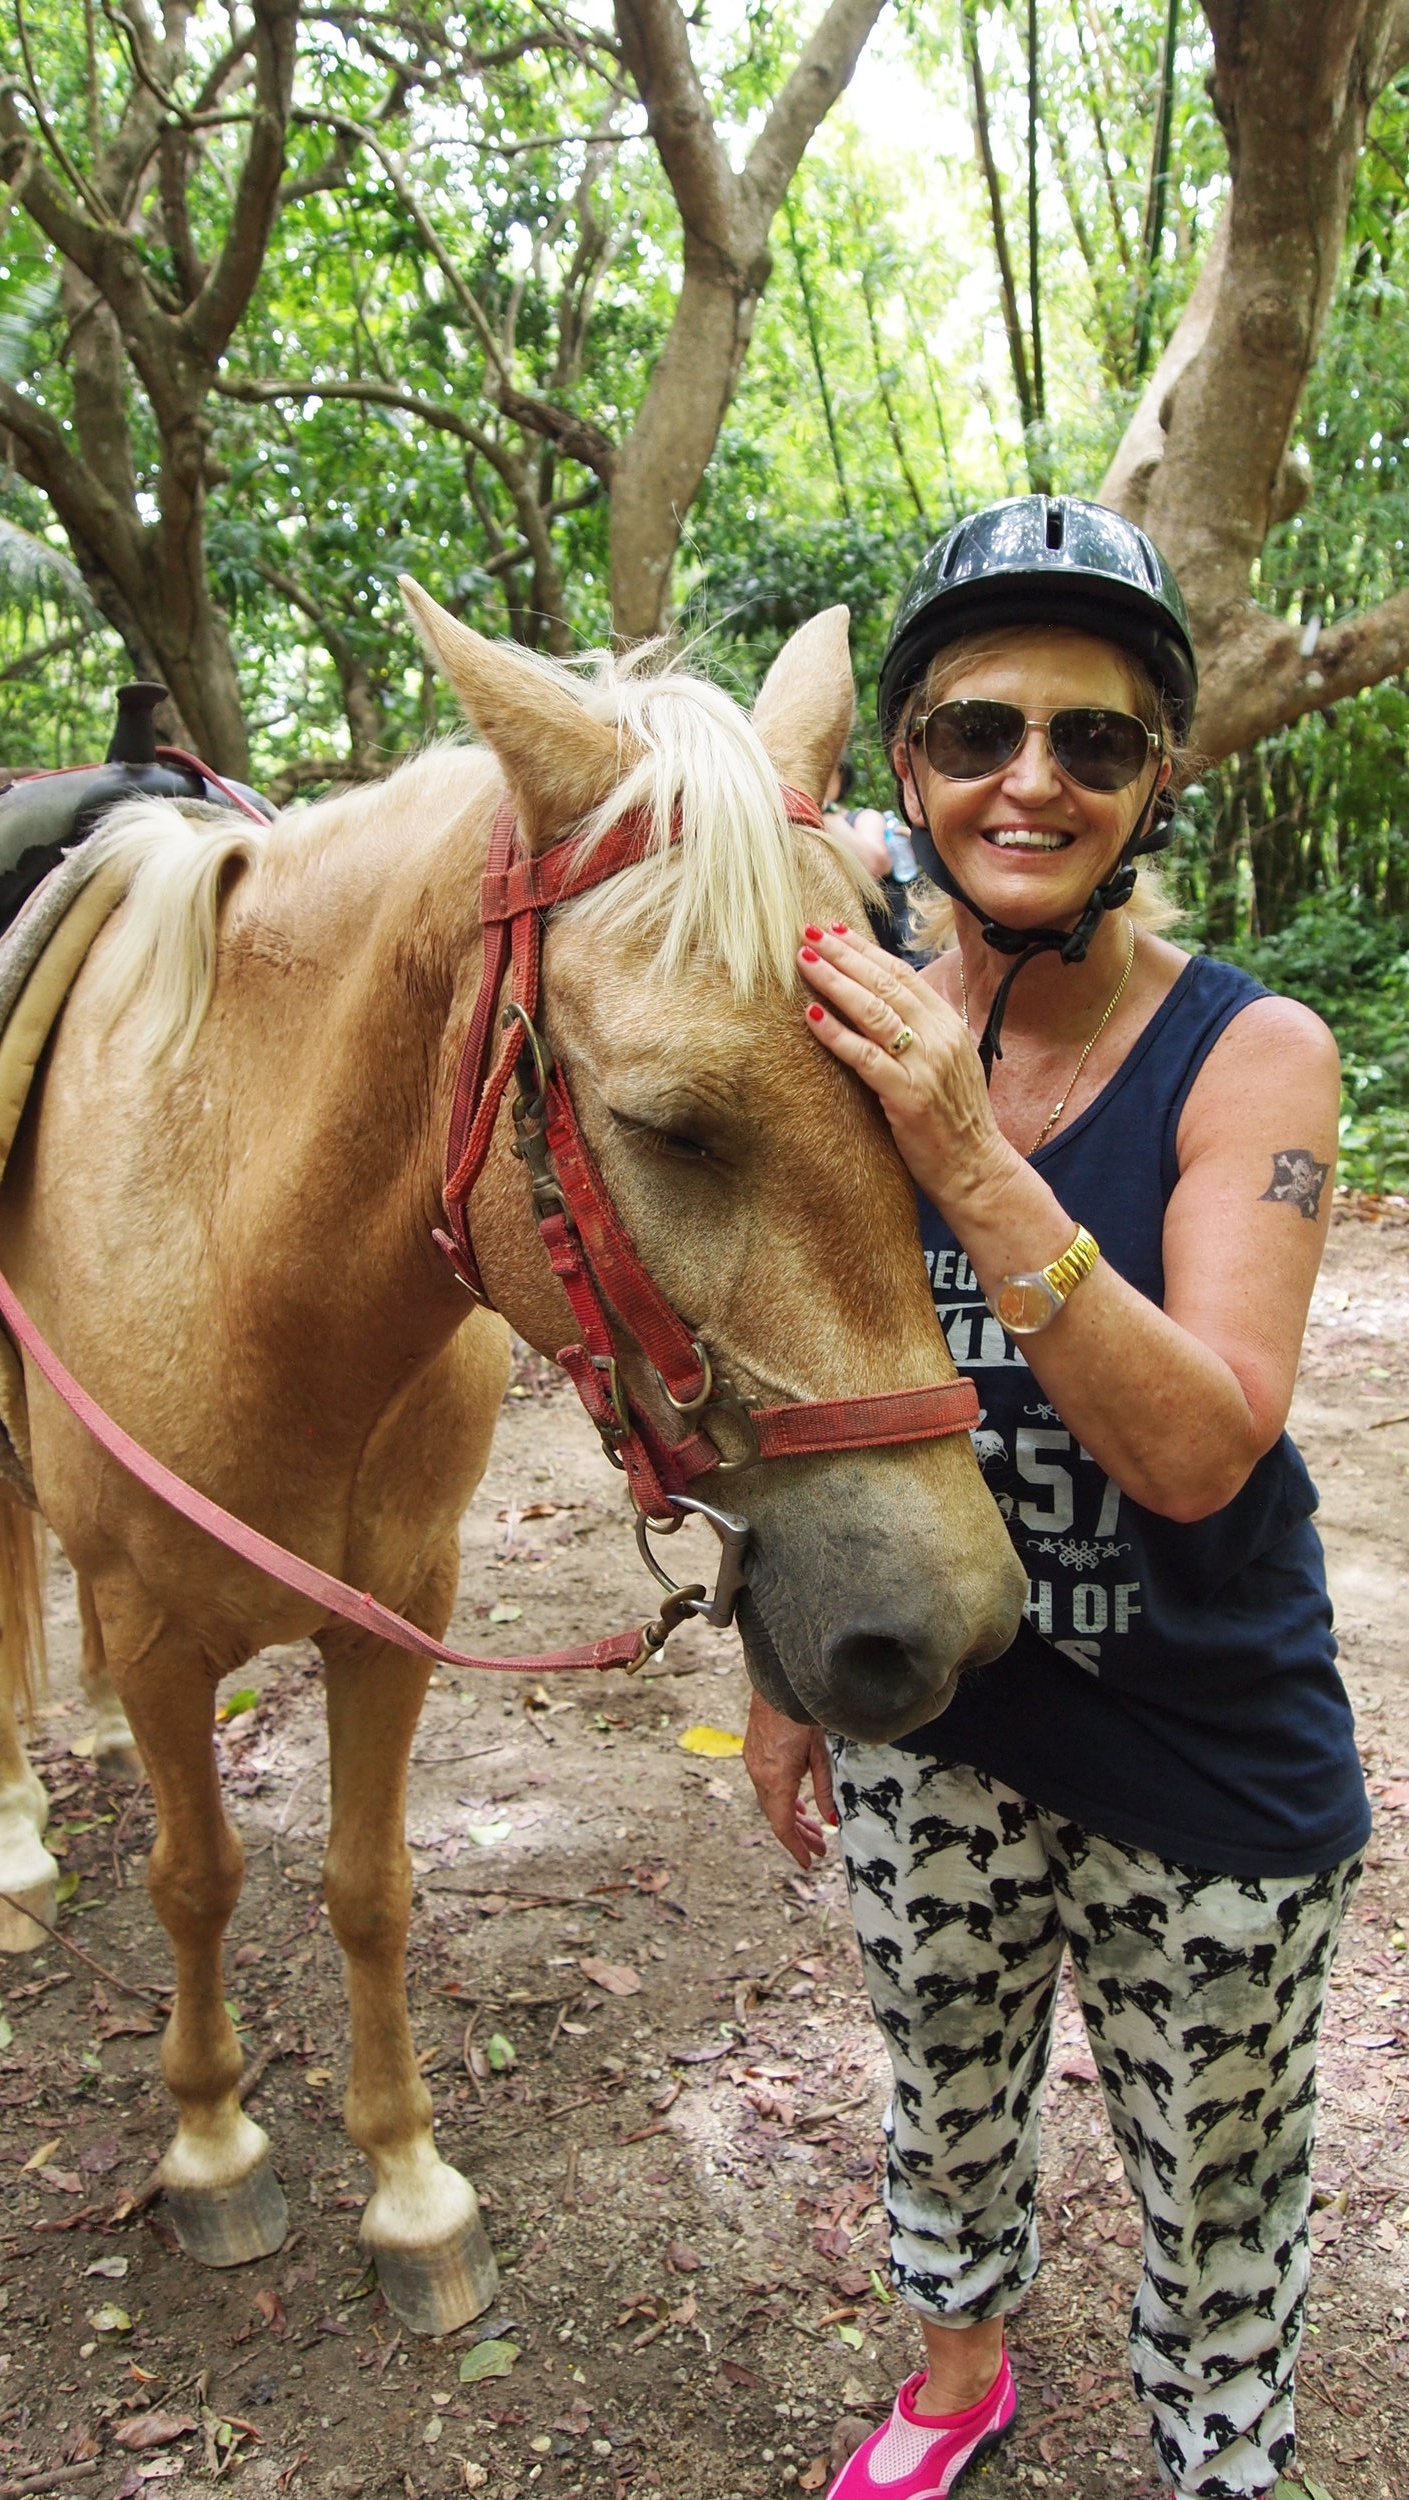 Horse Whisperer ( St Kitts Island, Carribean Sea )